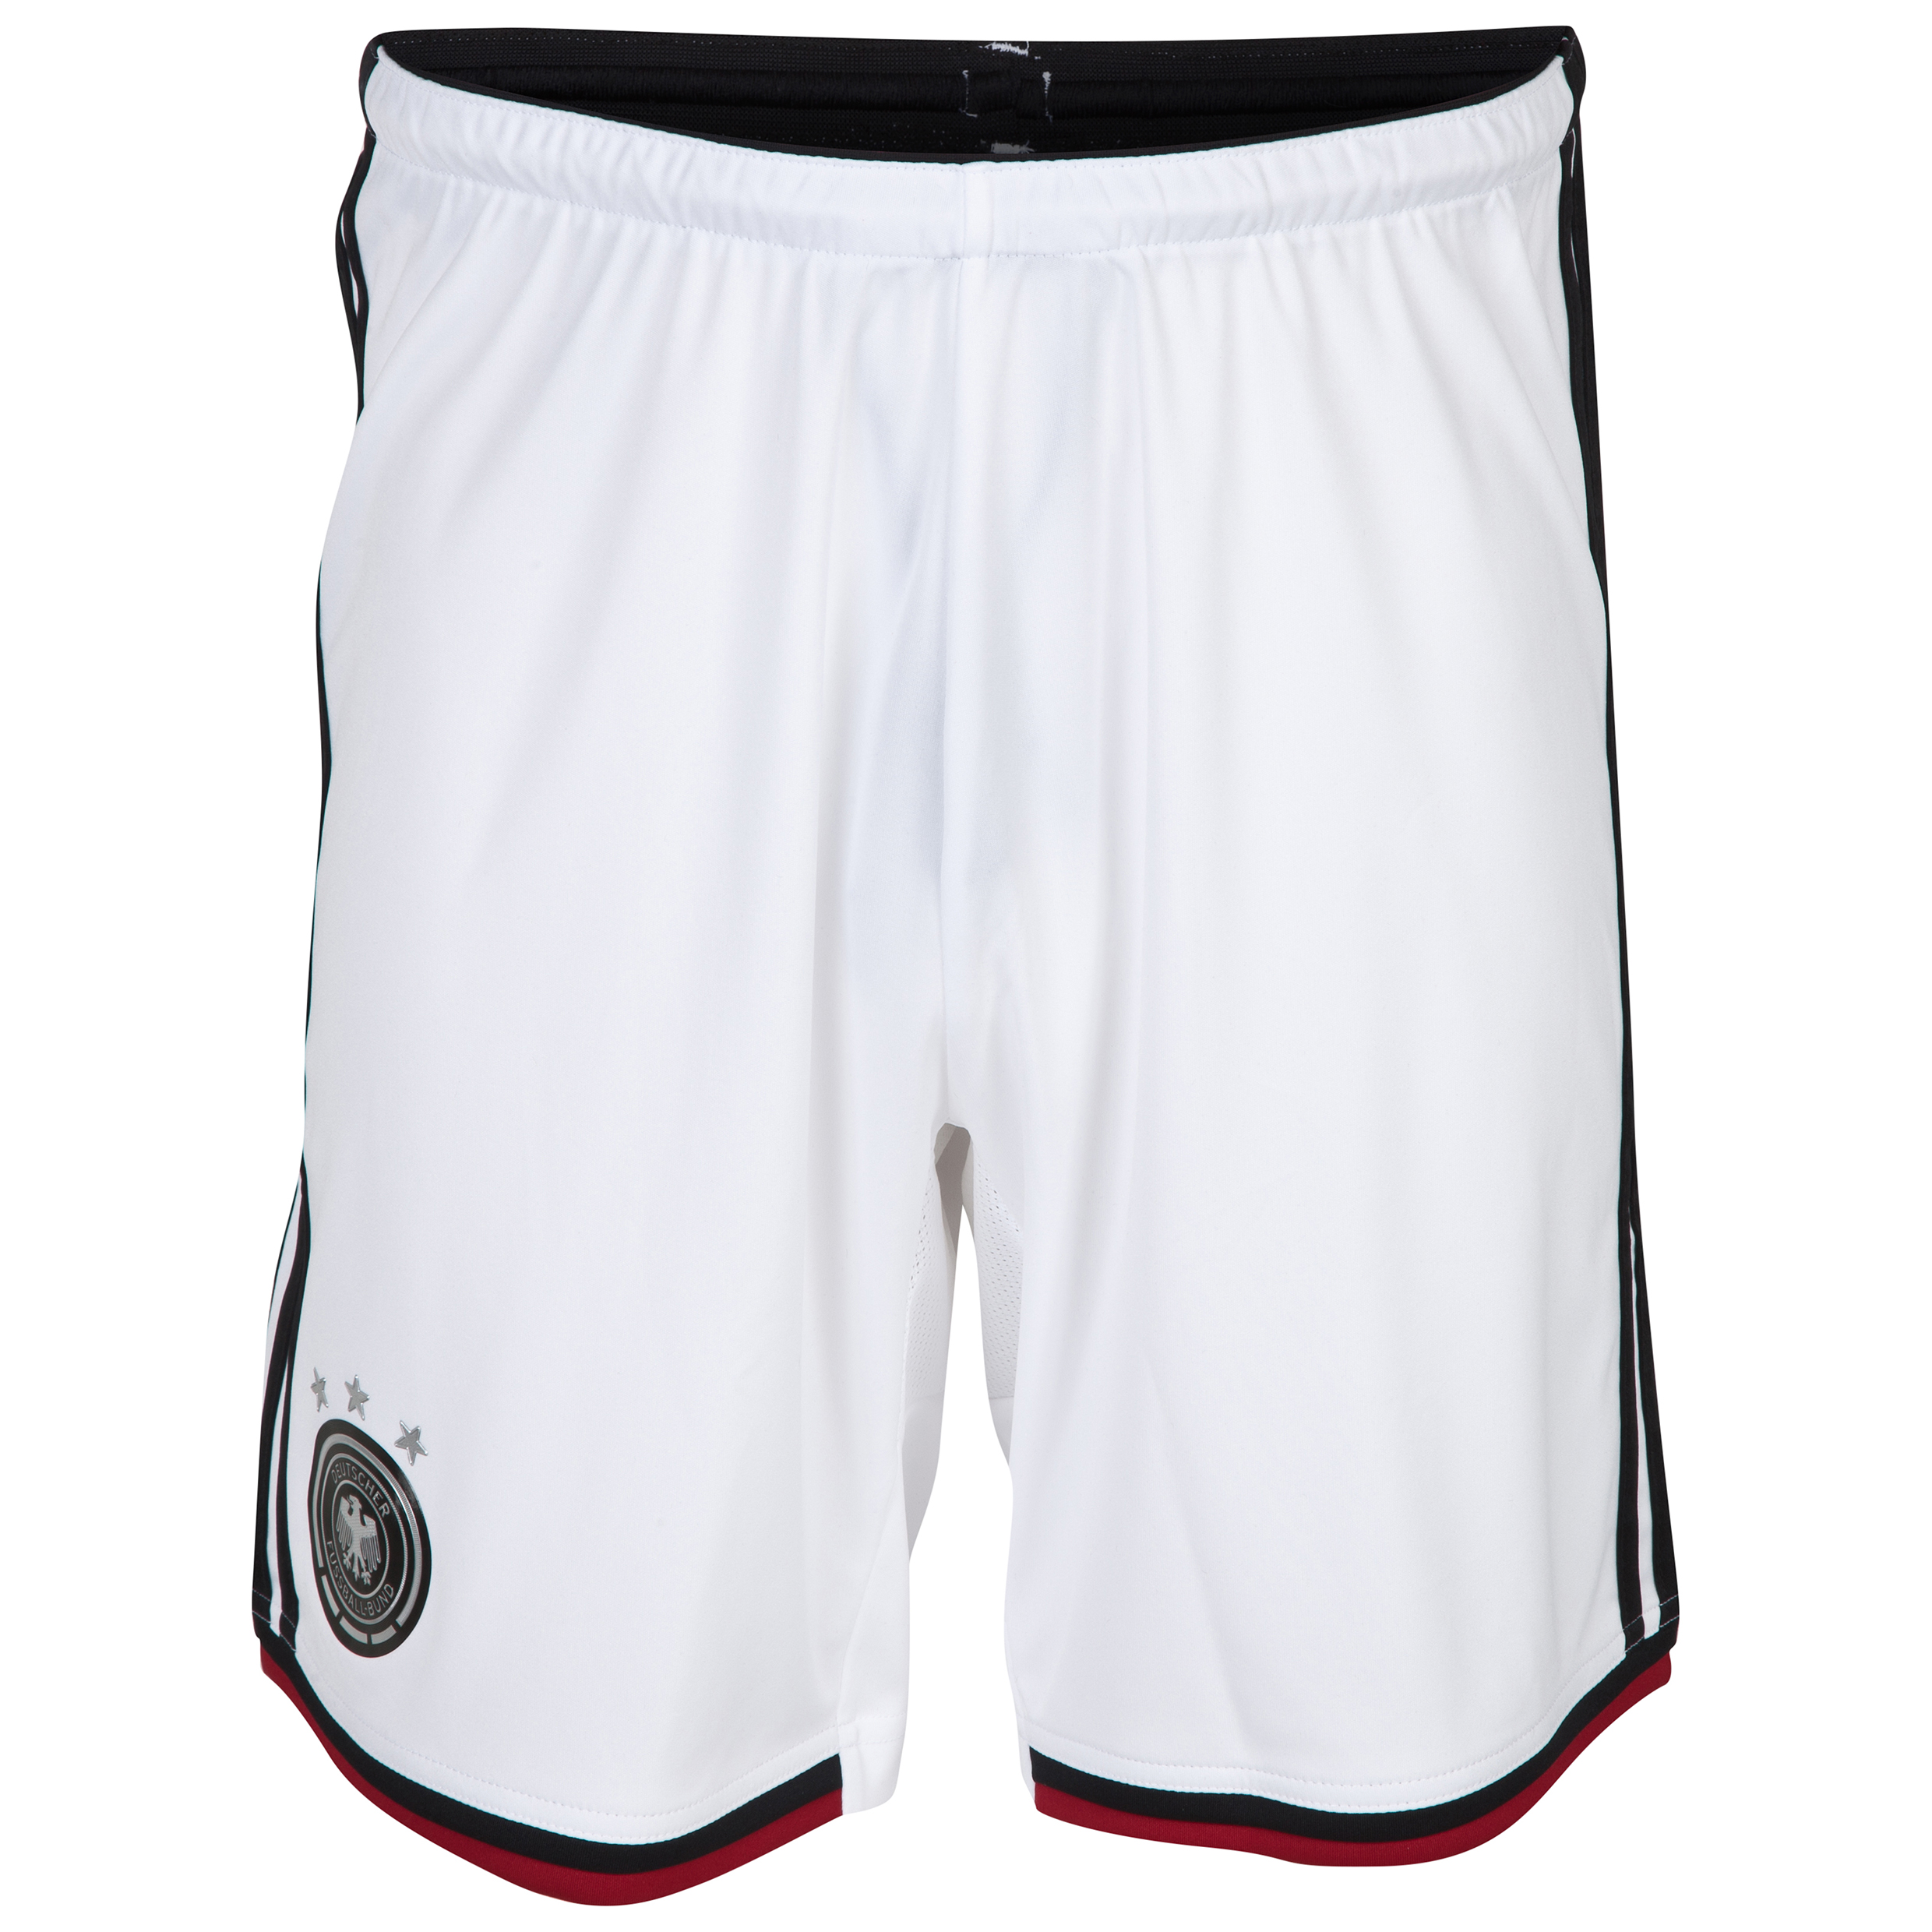 Germany Home Shorts 2014